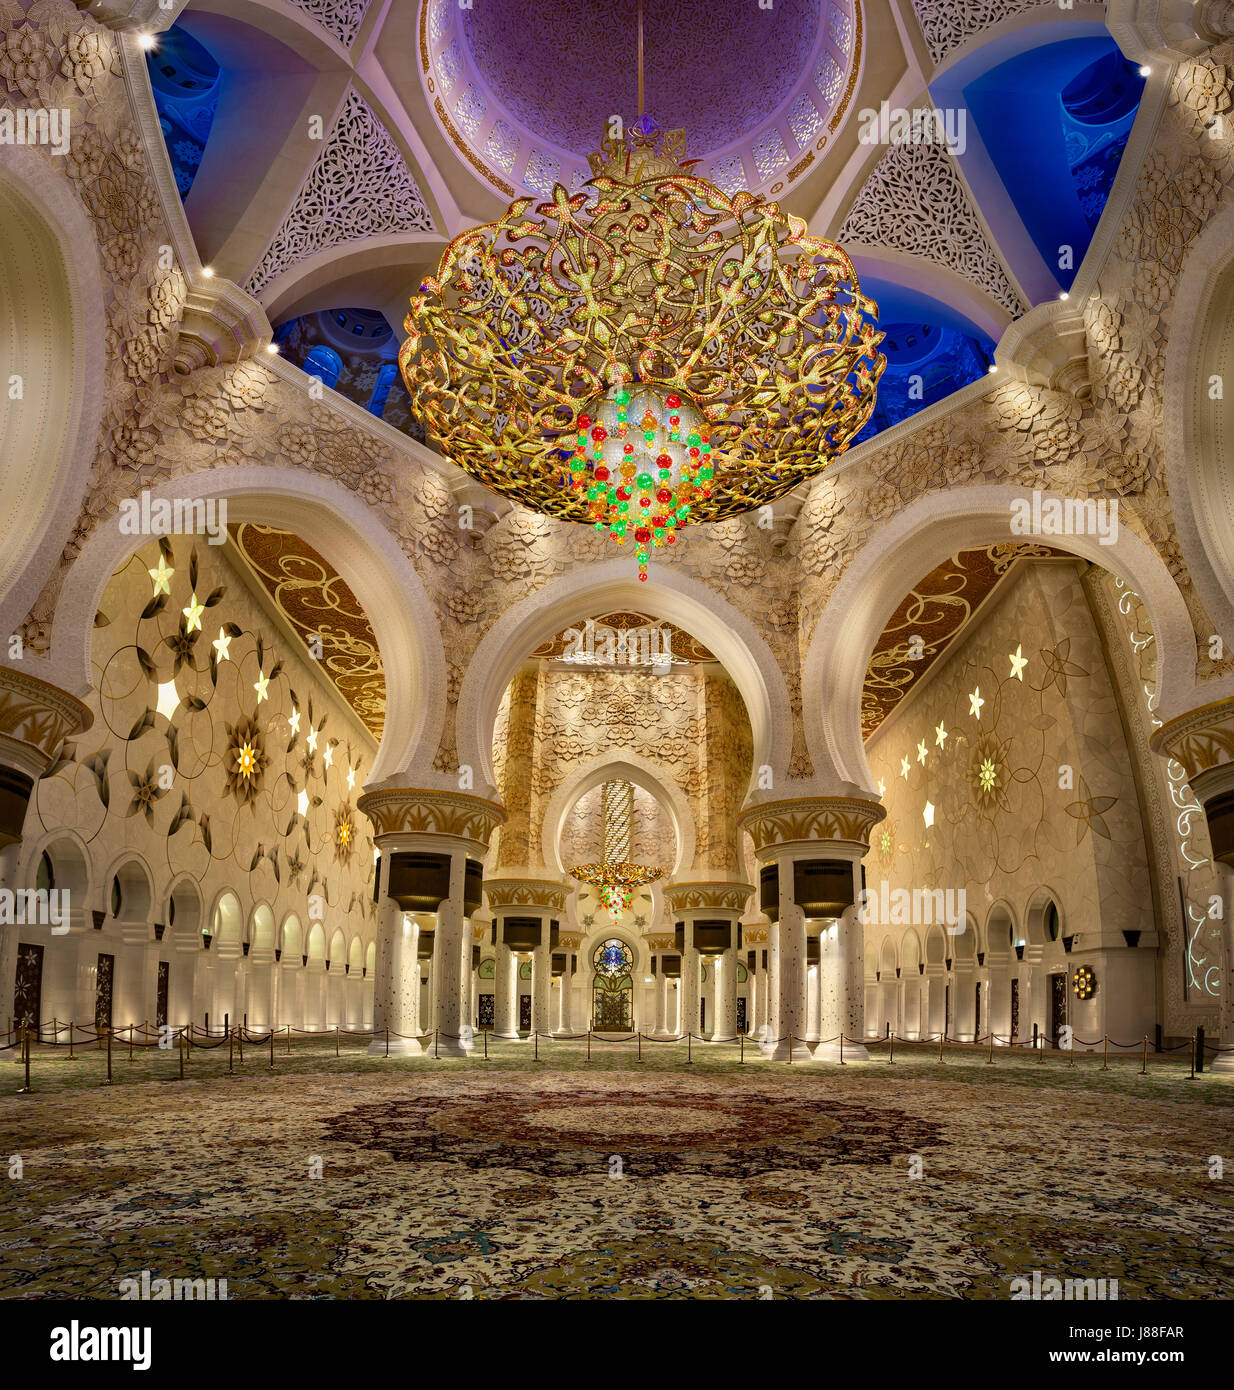 the Second Largest Chandelier in the world in Sheikh Zayed Mosque - Stock Image